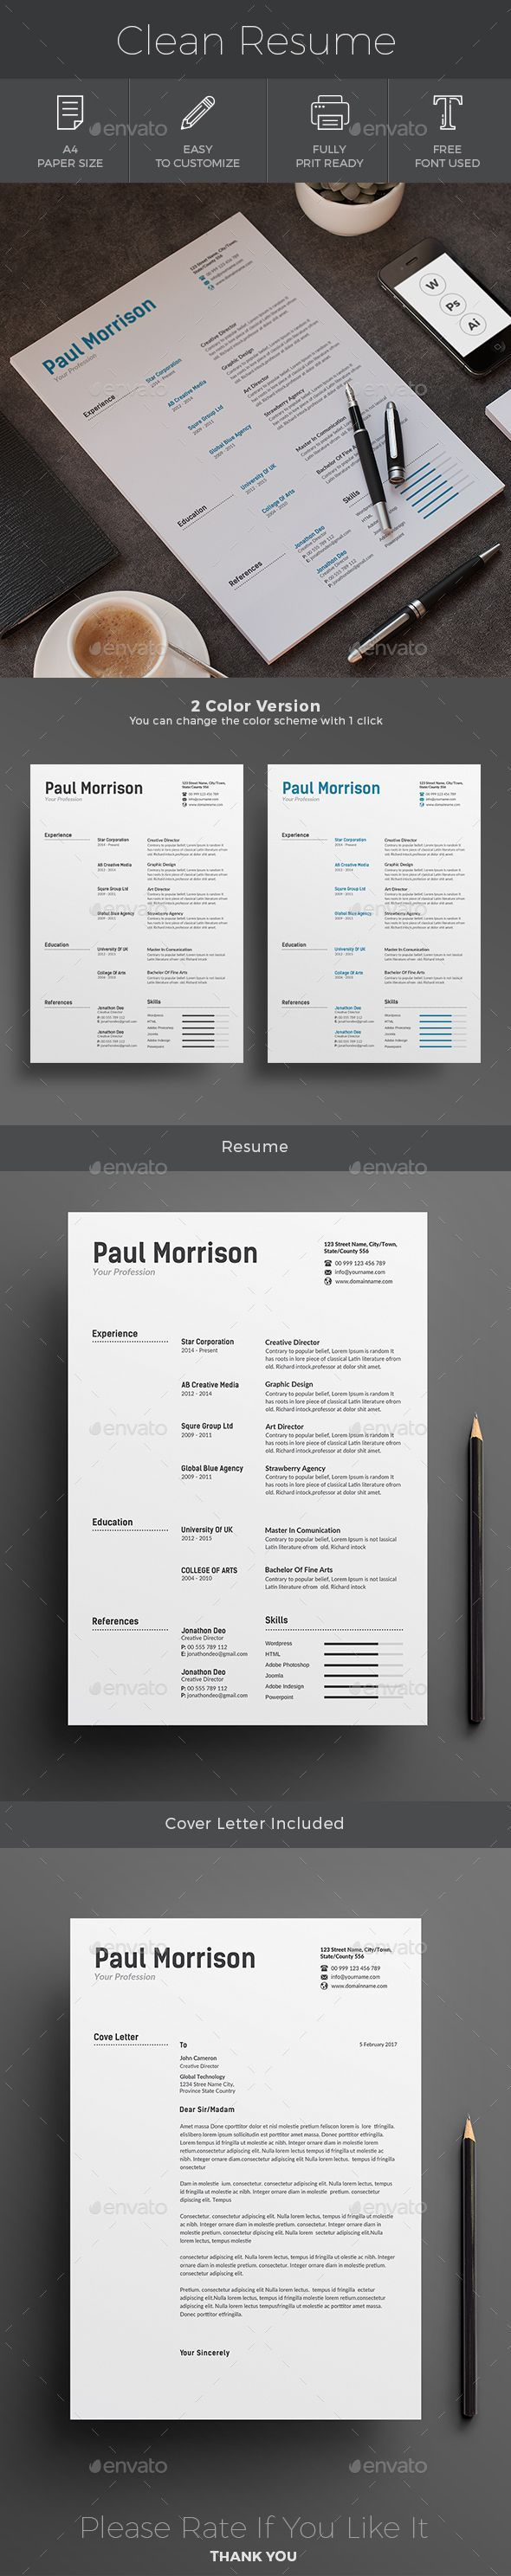 dynamic words for resume